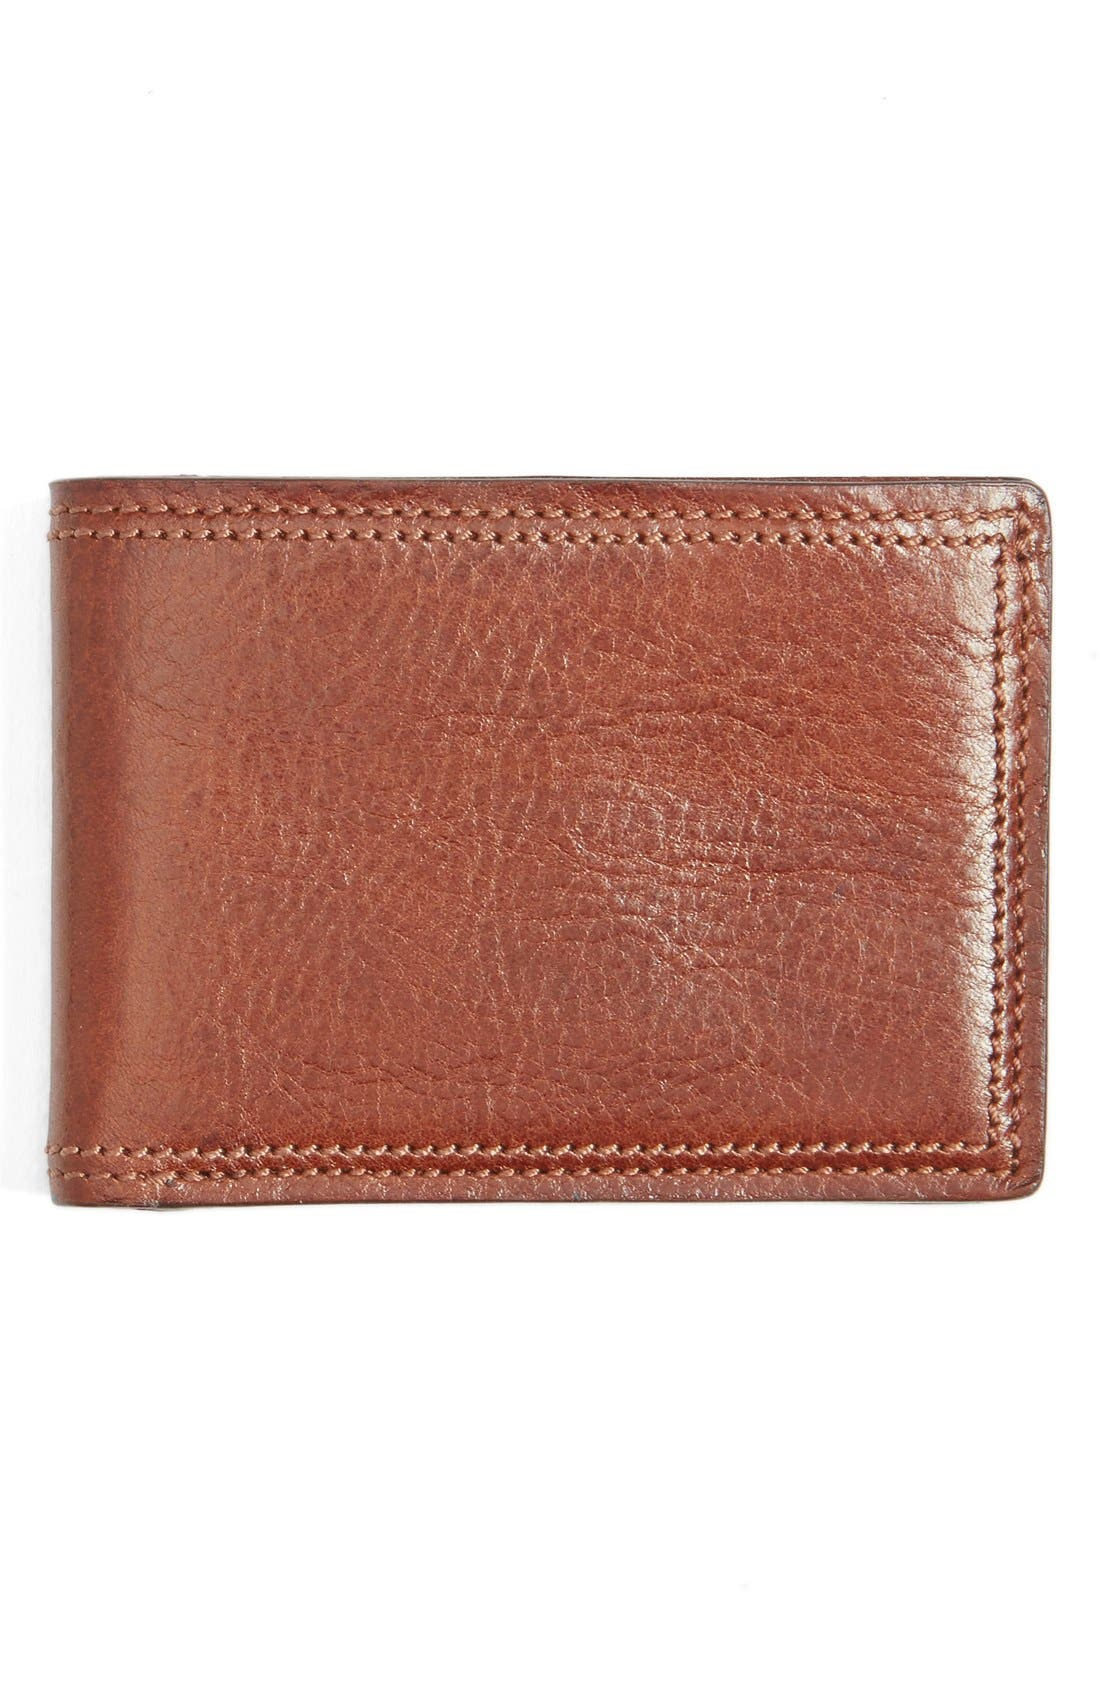 Leather Bifold Wallet,                             Main thumbnail 1, color,                             Amber